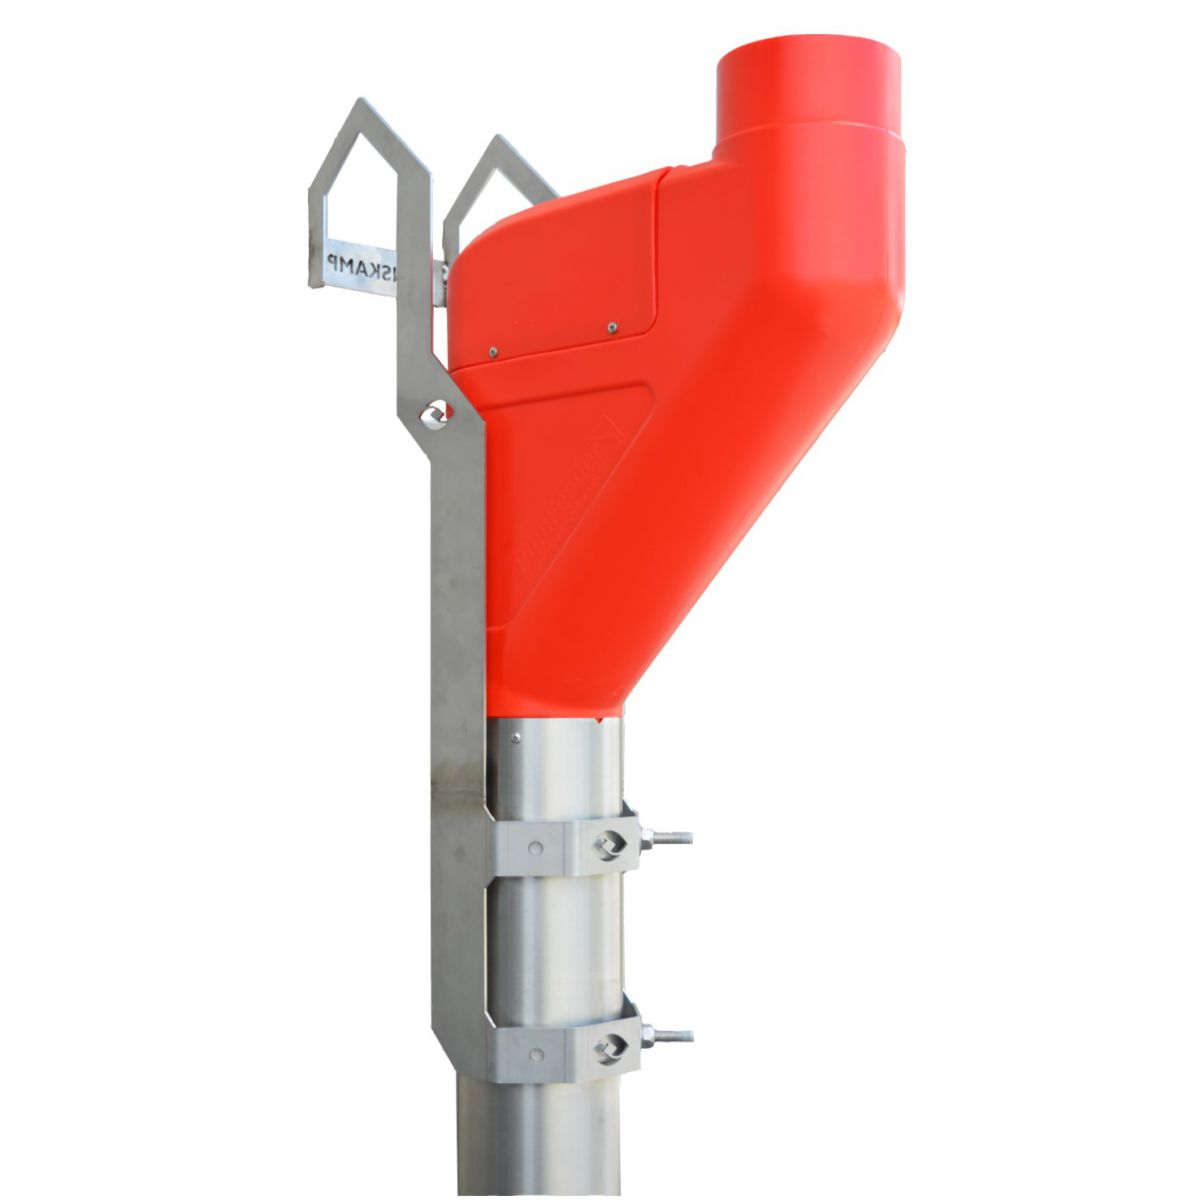 pipefeeder short red with mounting bracket for lely a4a5